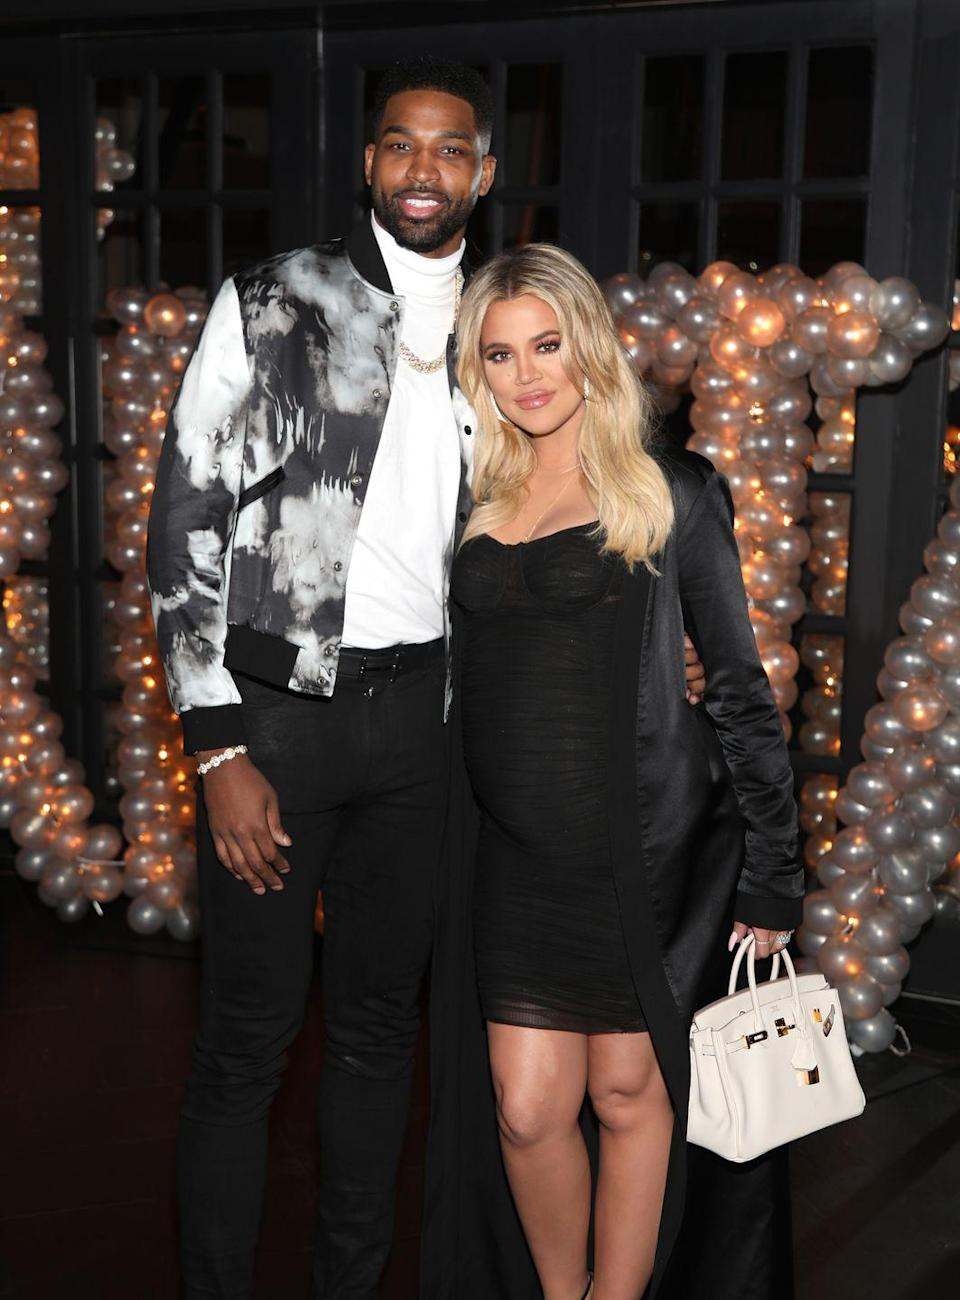 """<p>Just when it looked like Khloé found a faithful man, images of Tristan cheating made their rounds on the internet...while she was pregnant. Tristan and Khloé stayed together to raise their daughter—that is, until she allegedly found out he cheated with family friend Jordyn Woods. They finally <a href=""""https://www.womenshealthmag.com/fitness/a26573674/khloe-kardashian-tristan-thompson-workout-breakup-therapy/"""" rel=""""nofollow noopener"""" target=""""_blank"""" data-ylk=""""slk:split for good"""" class=""""link rapid-noclick-resp"""">split for good</a> in February.</p>"""